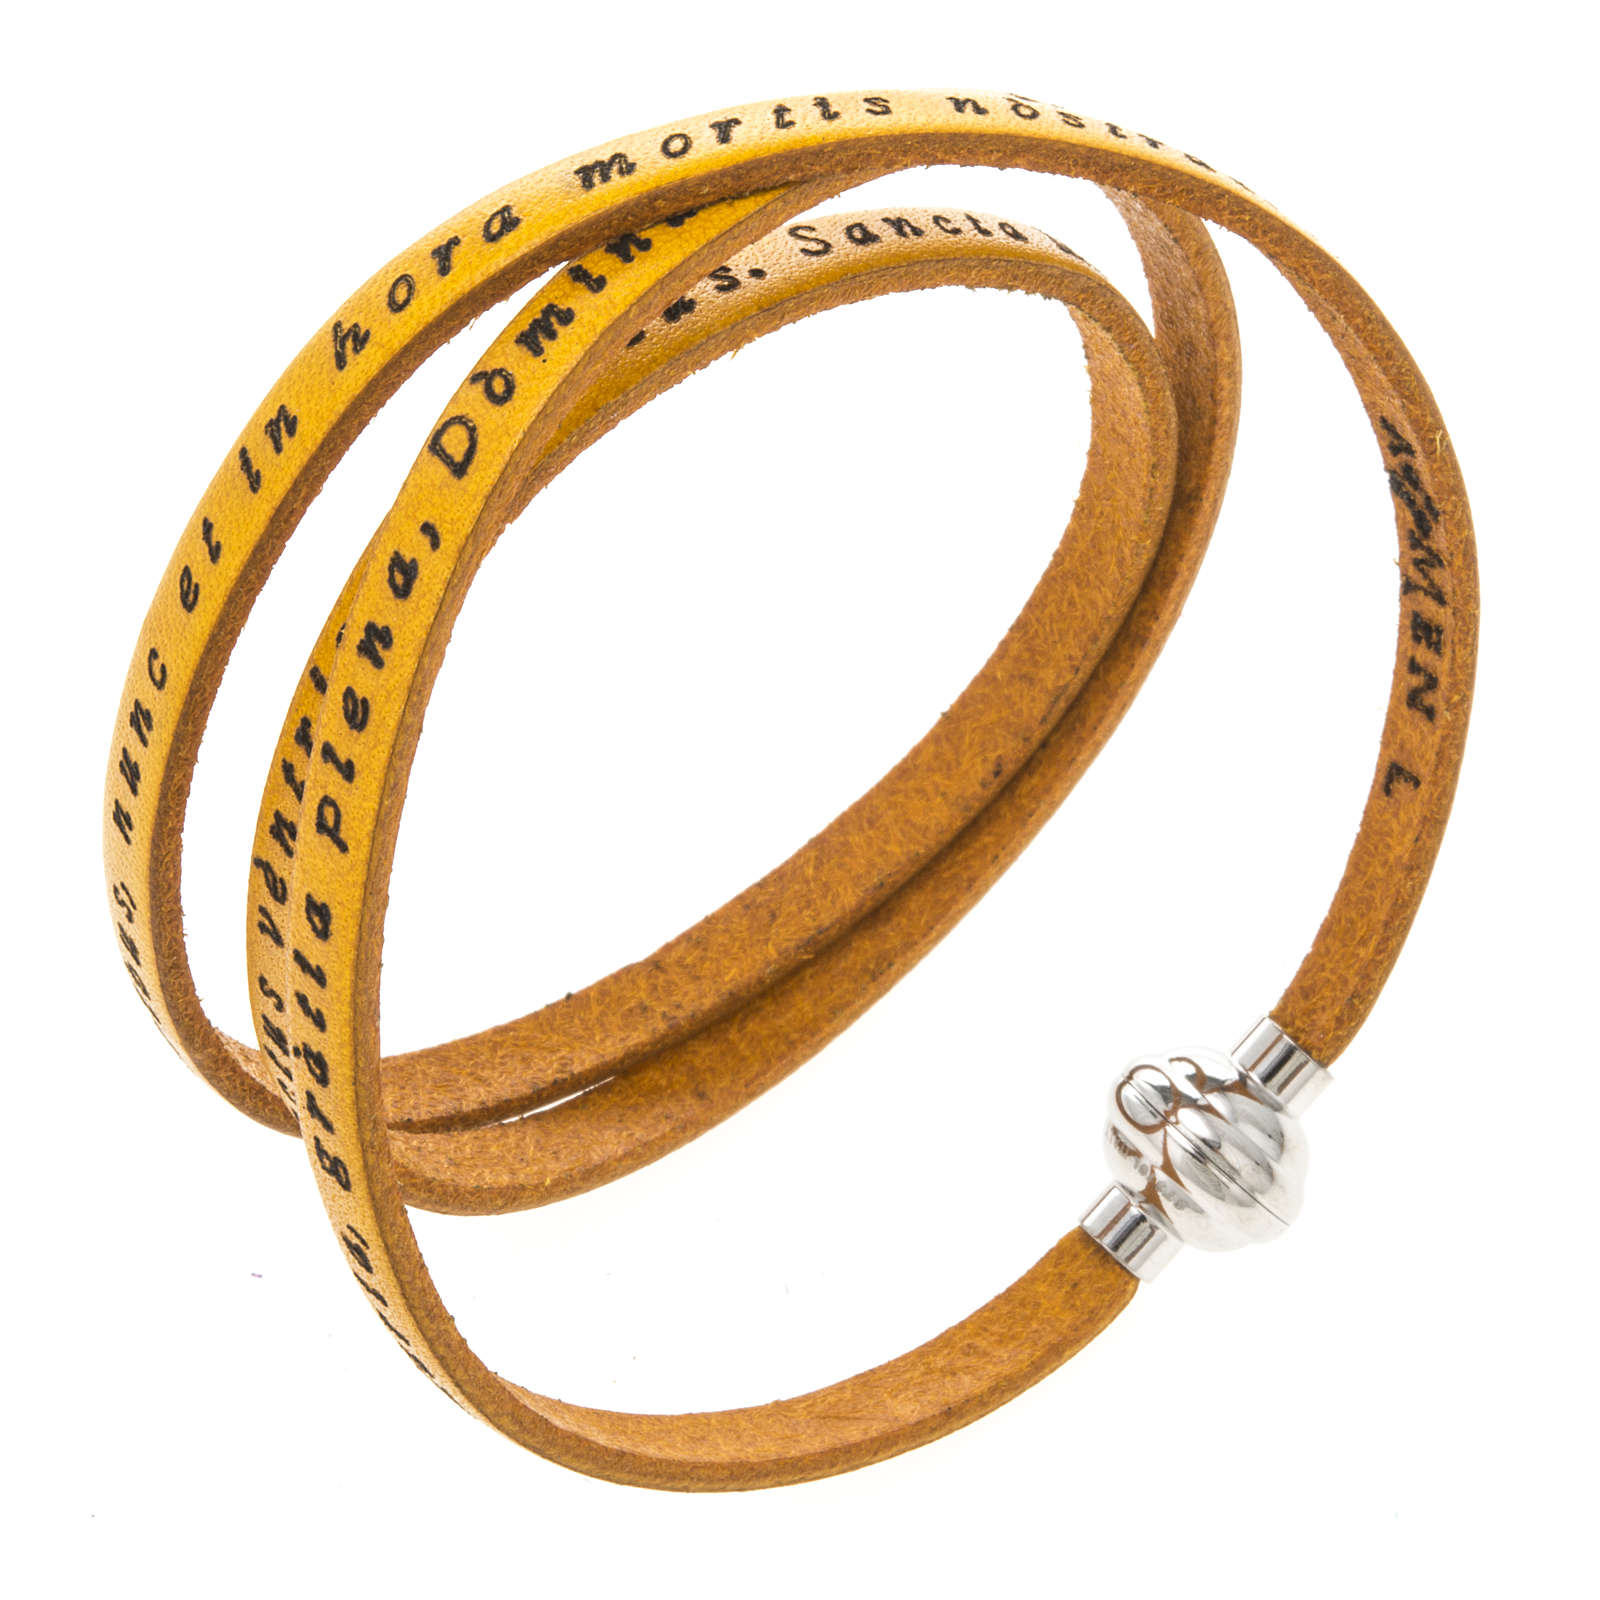 Amen Bracelet in yellow leather Hail Mary LAT 4